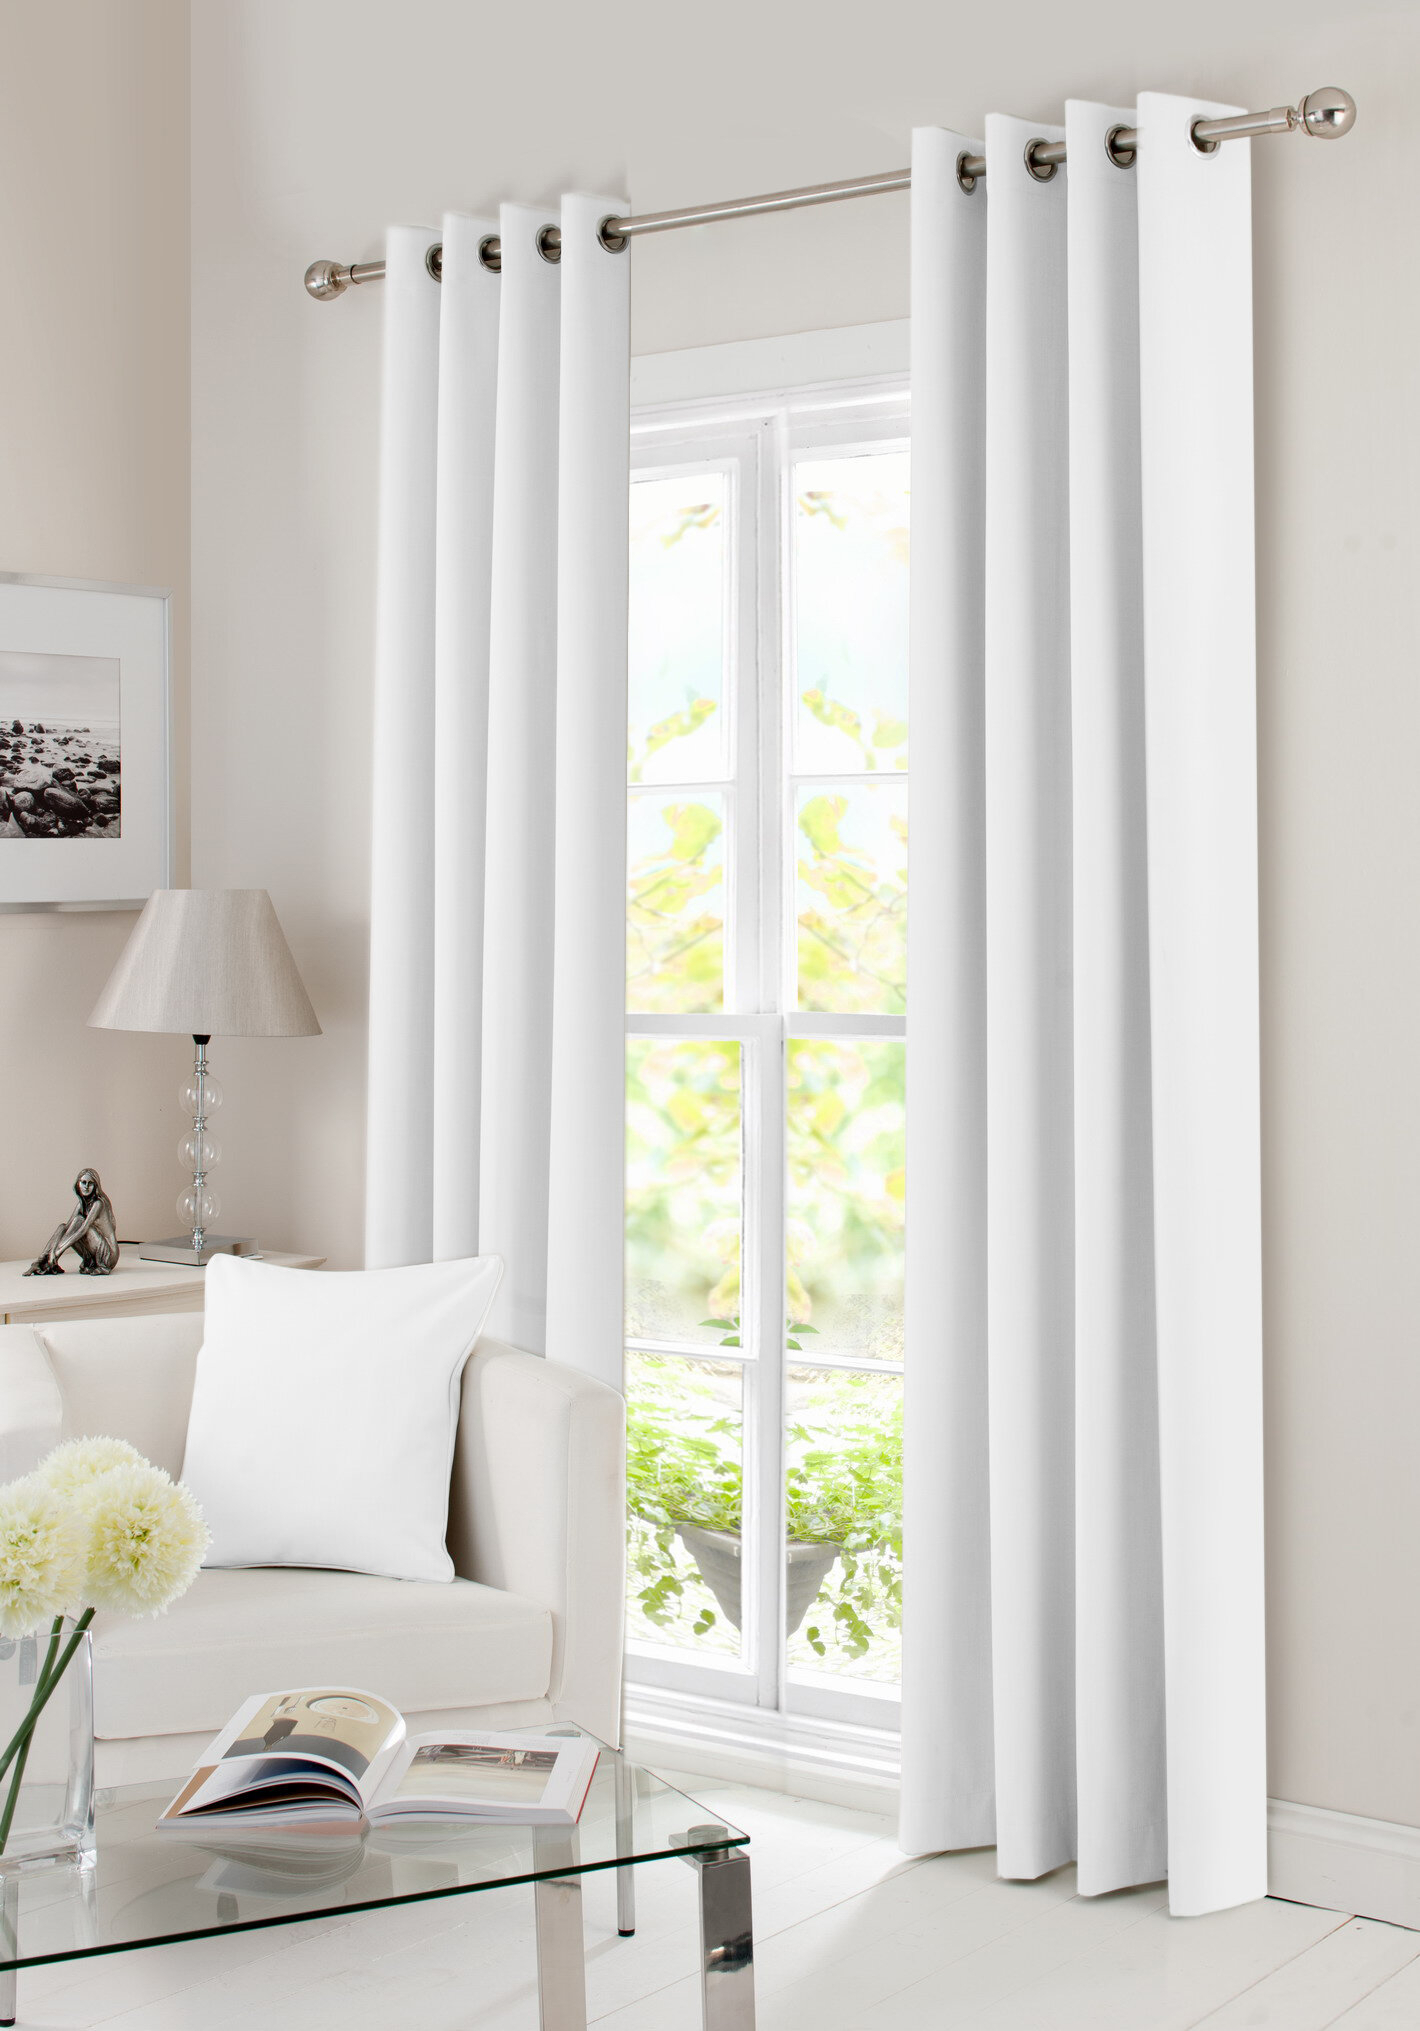 Joesph Solid Max Blackout Thermal Grommet Curtain Panels Intended For Superior Leaves Insulated Thermal Blackout Grommet Curtain Panel Pairs (View 18 of 30)